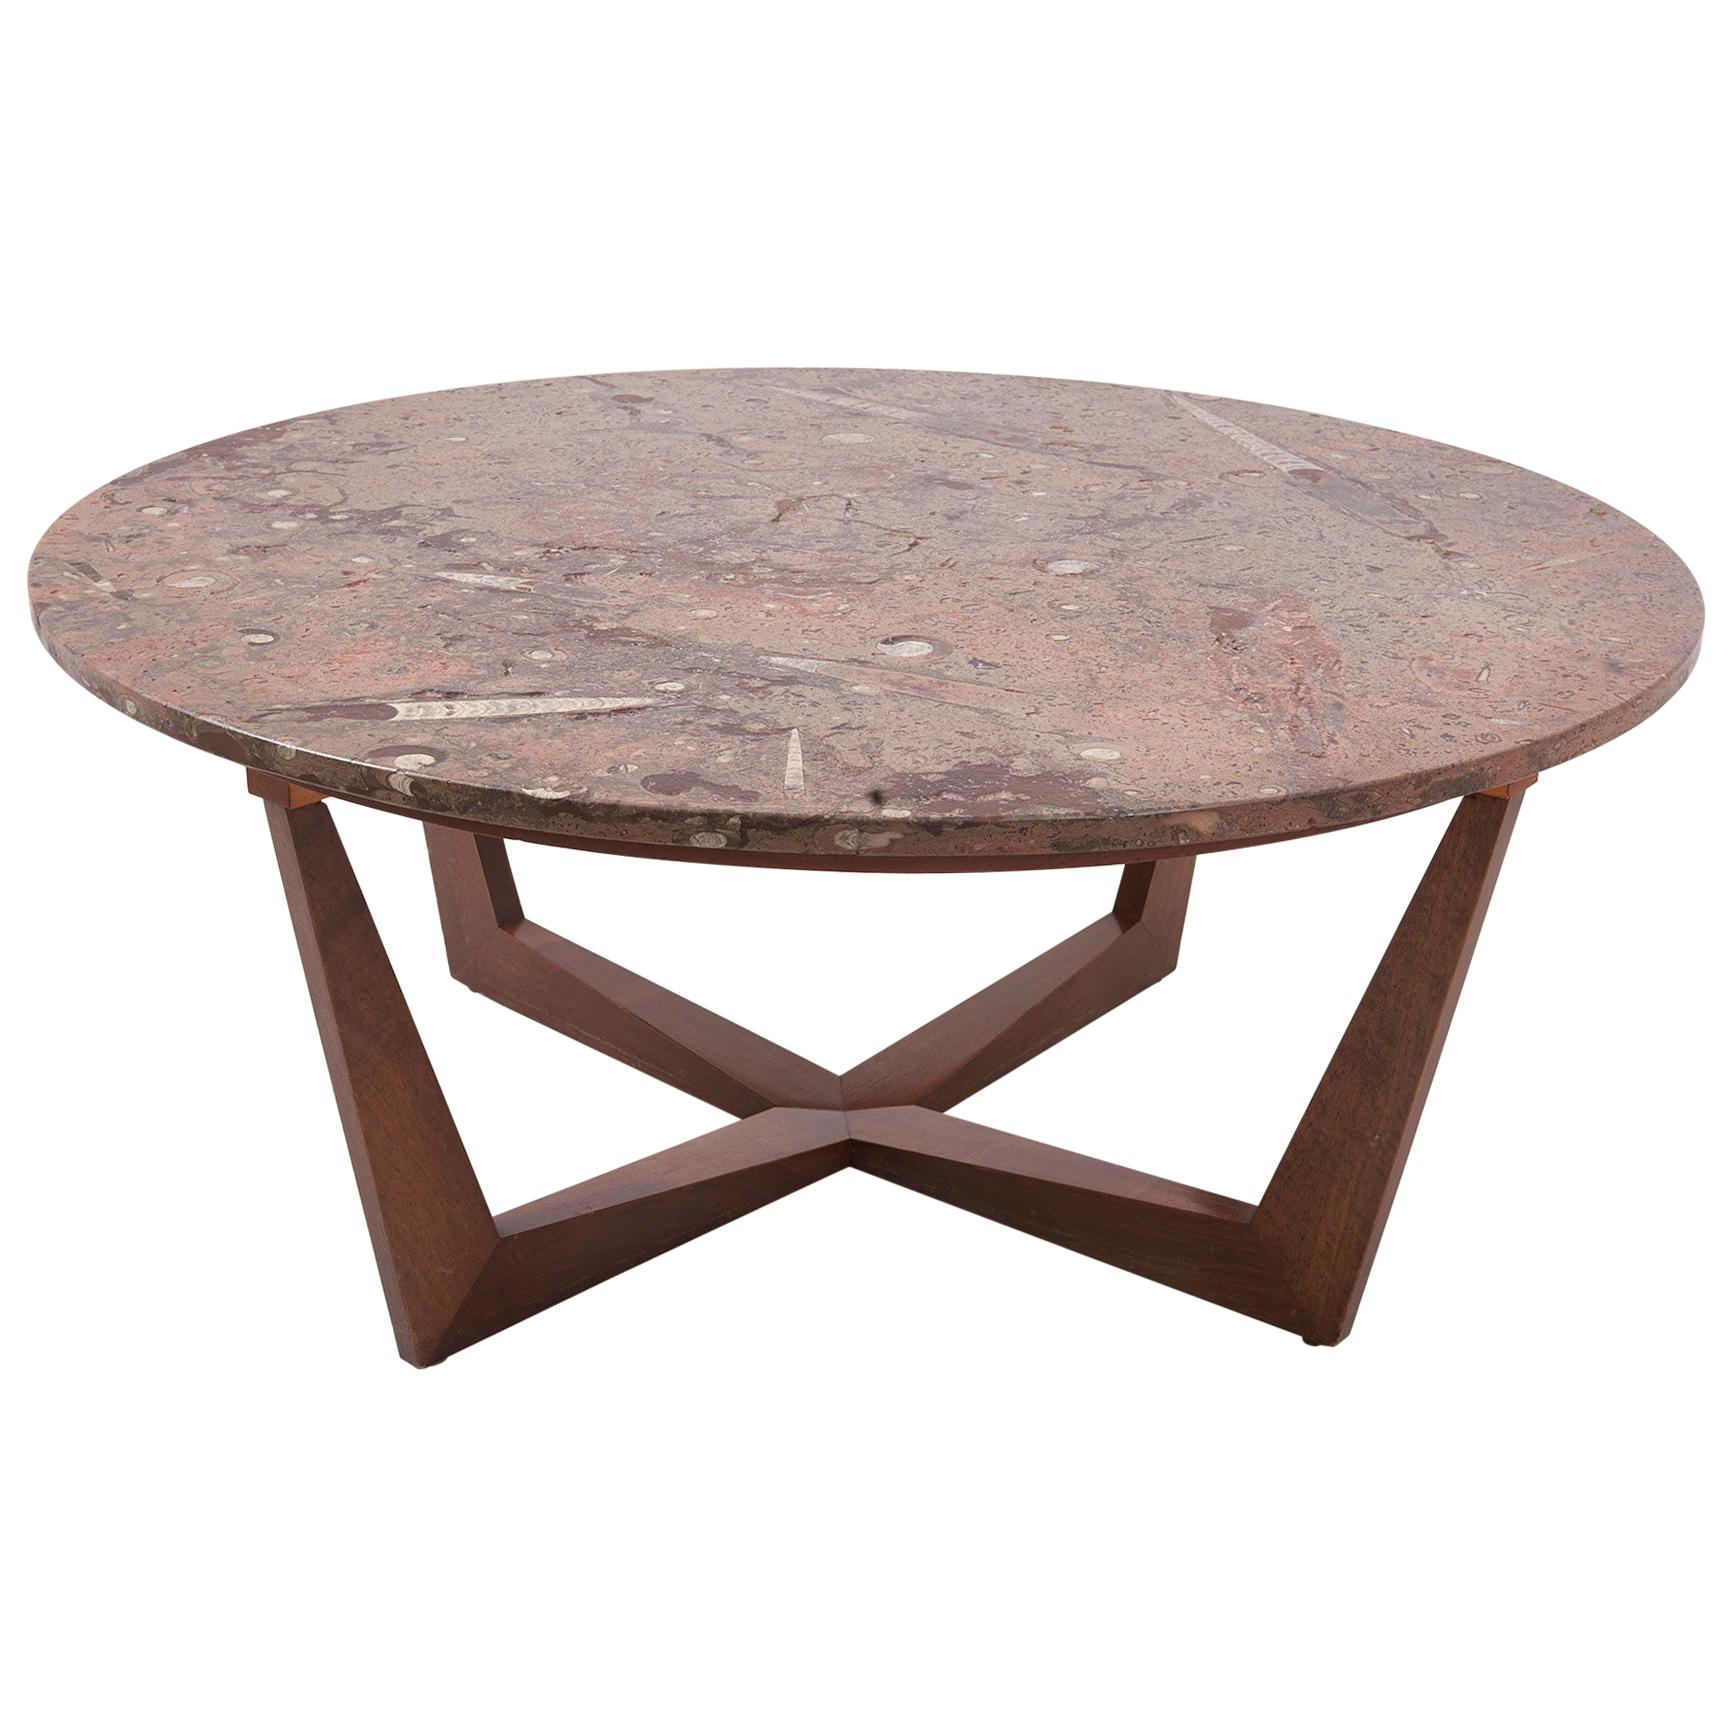 Ronald Schmitt Fossil Stone Top Coffee Table, Germany, 1970s